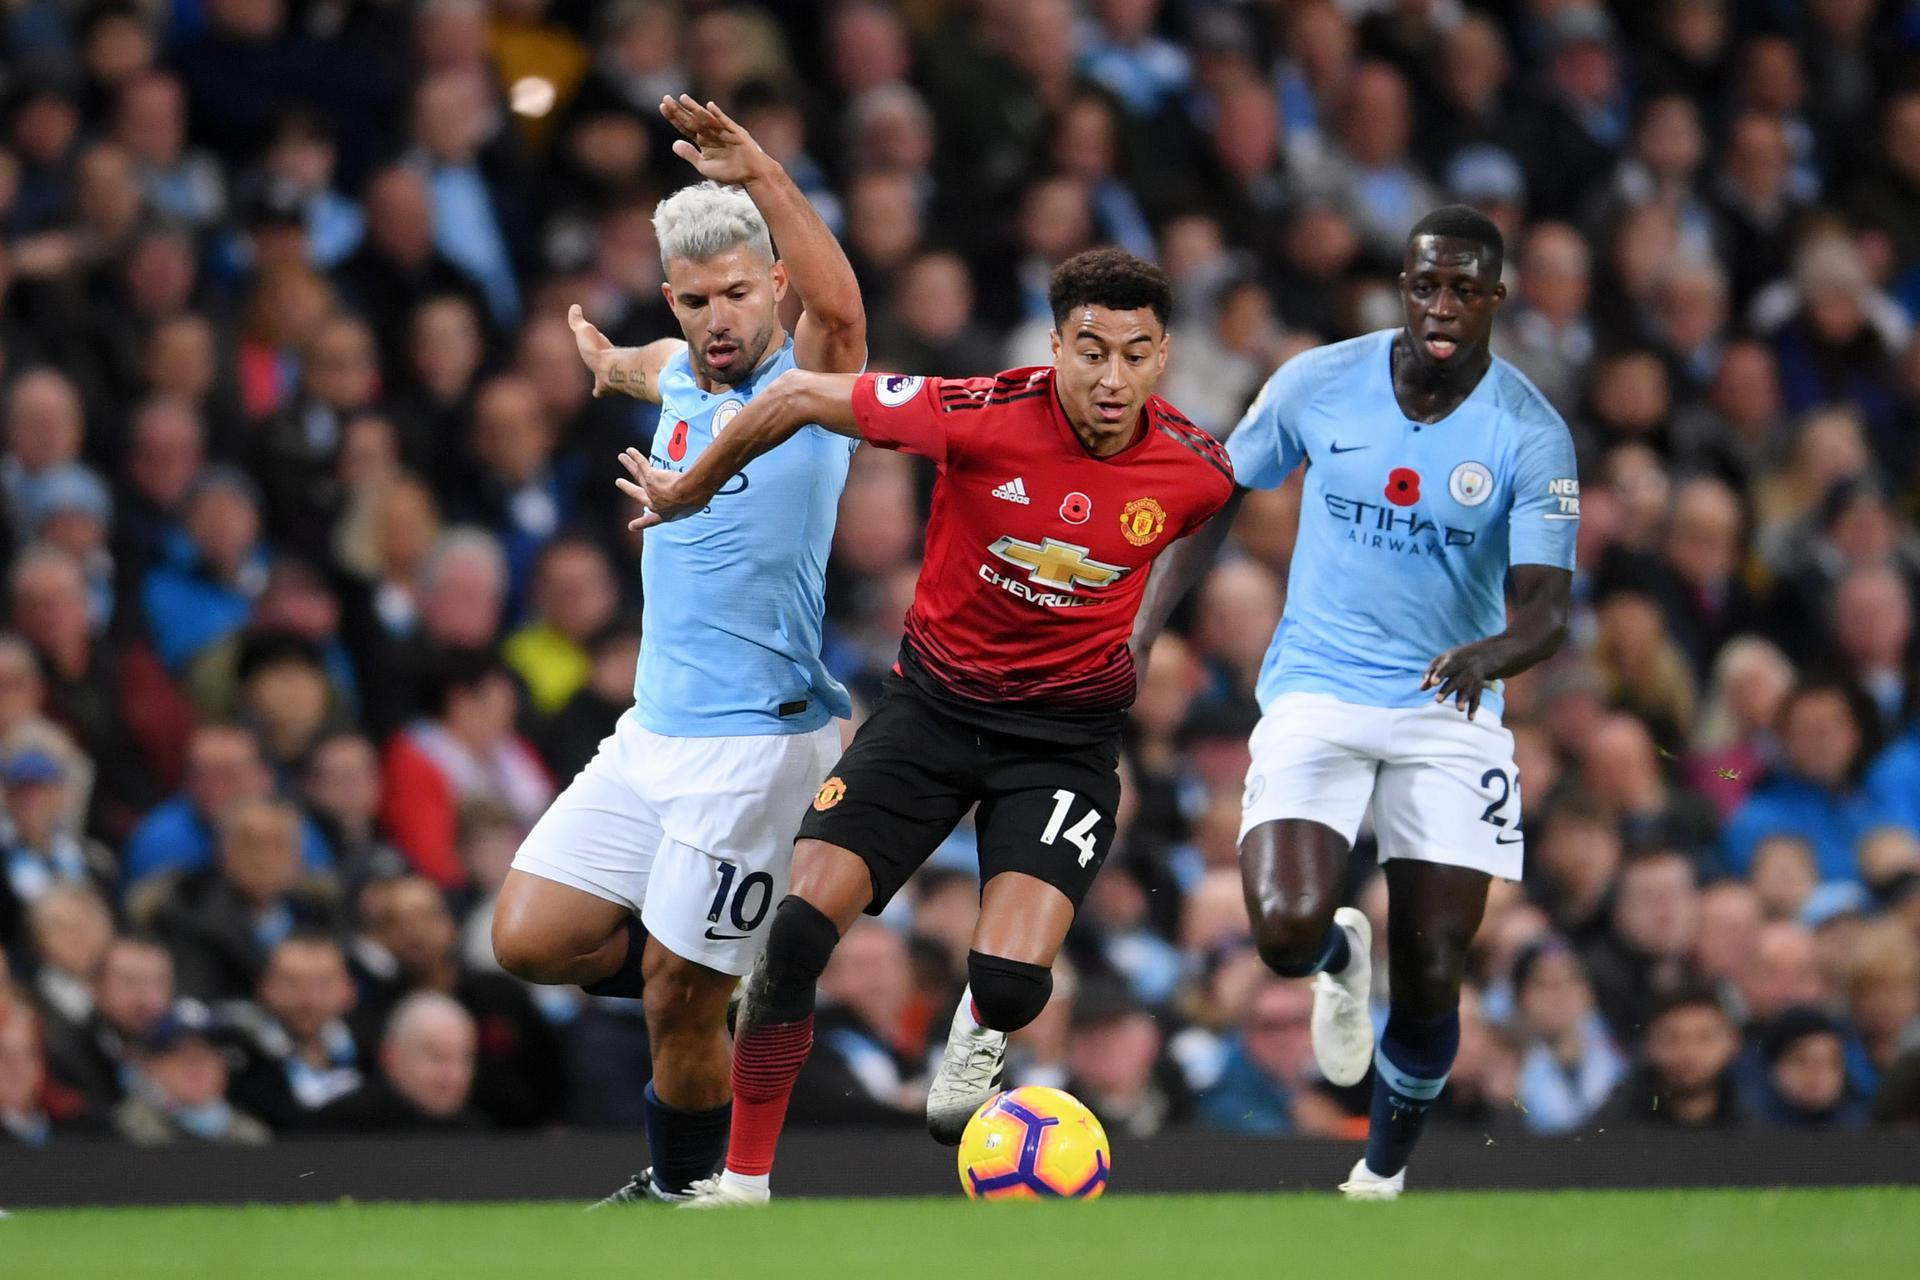 Jesse Lingard runs between Sergio Aguero and Benjamin Mendy.,